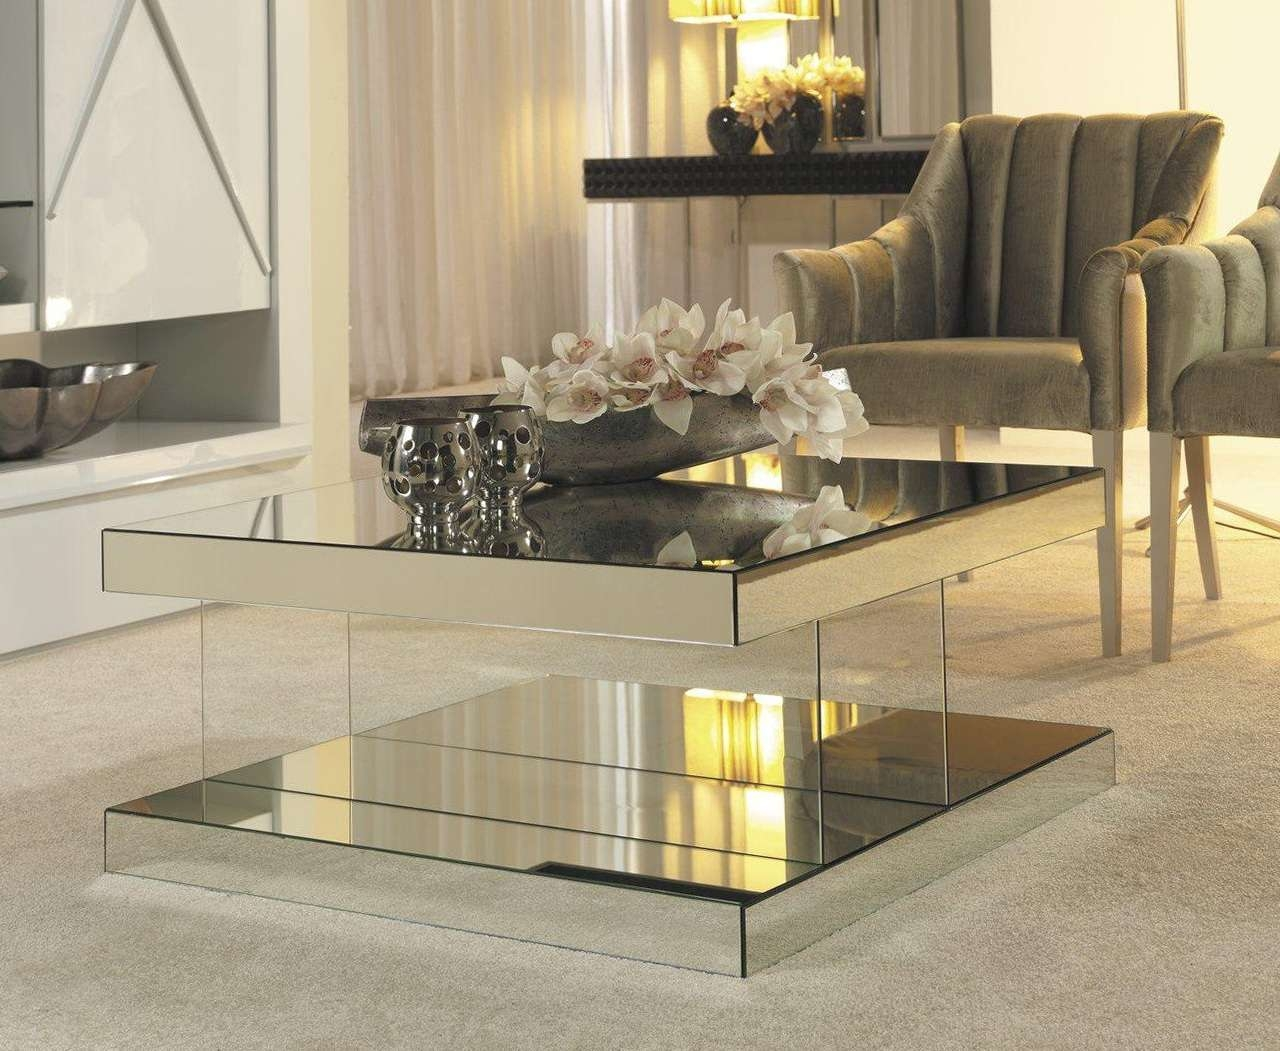 Famous Coffee Tables Mirrored With Regard To Luxury Mirrored Coffee Table — Cabinets, Beds, Sofas And (View 2 of 20)